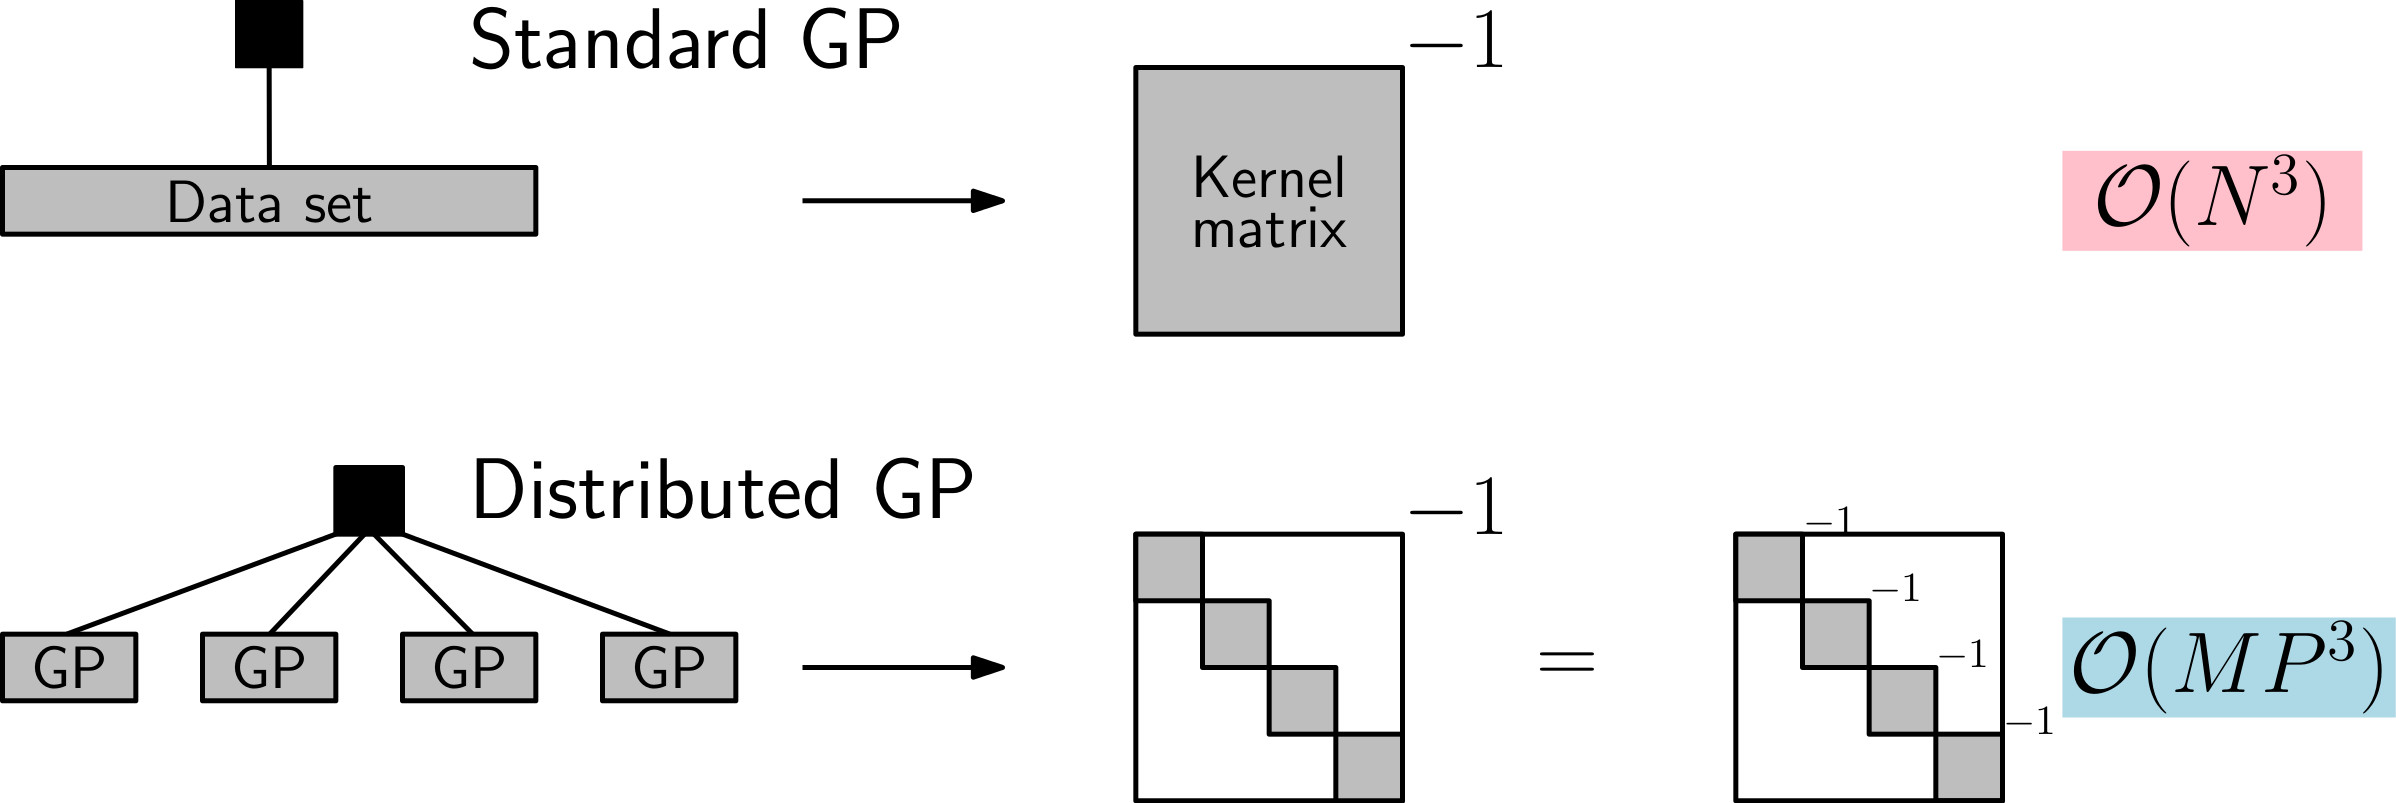 Large-Scale Gaussian Processes | Statistical Machine Learning